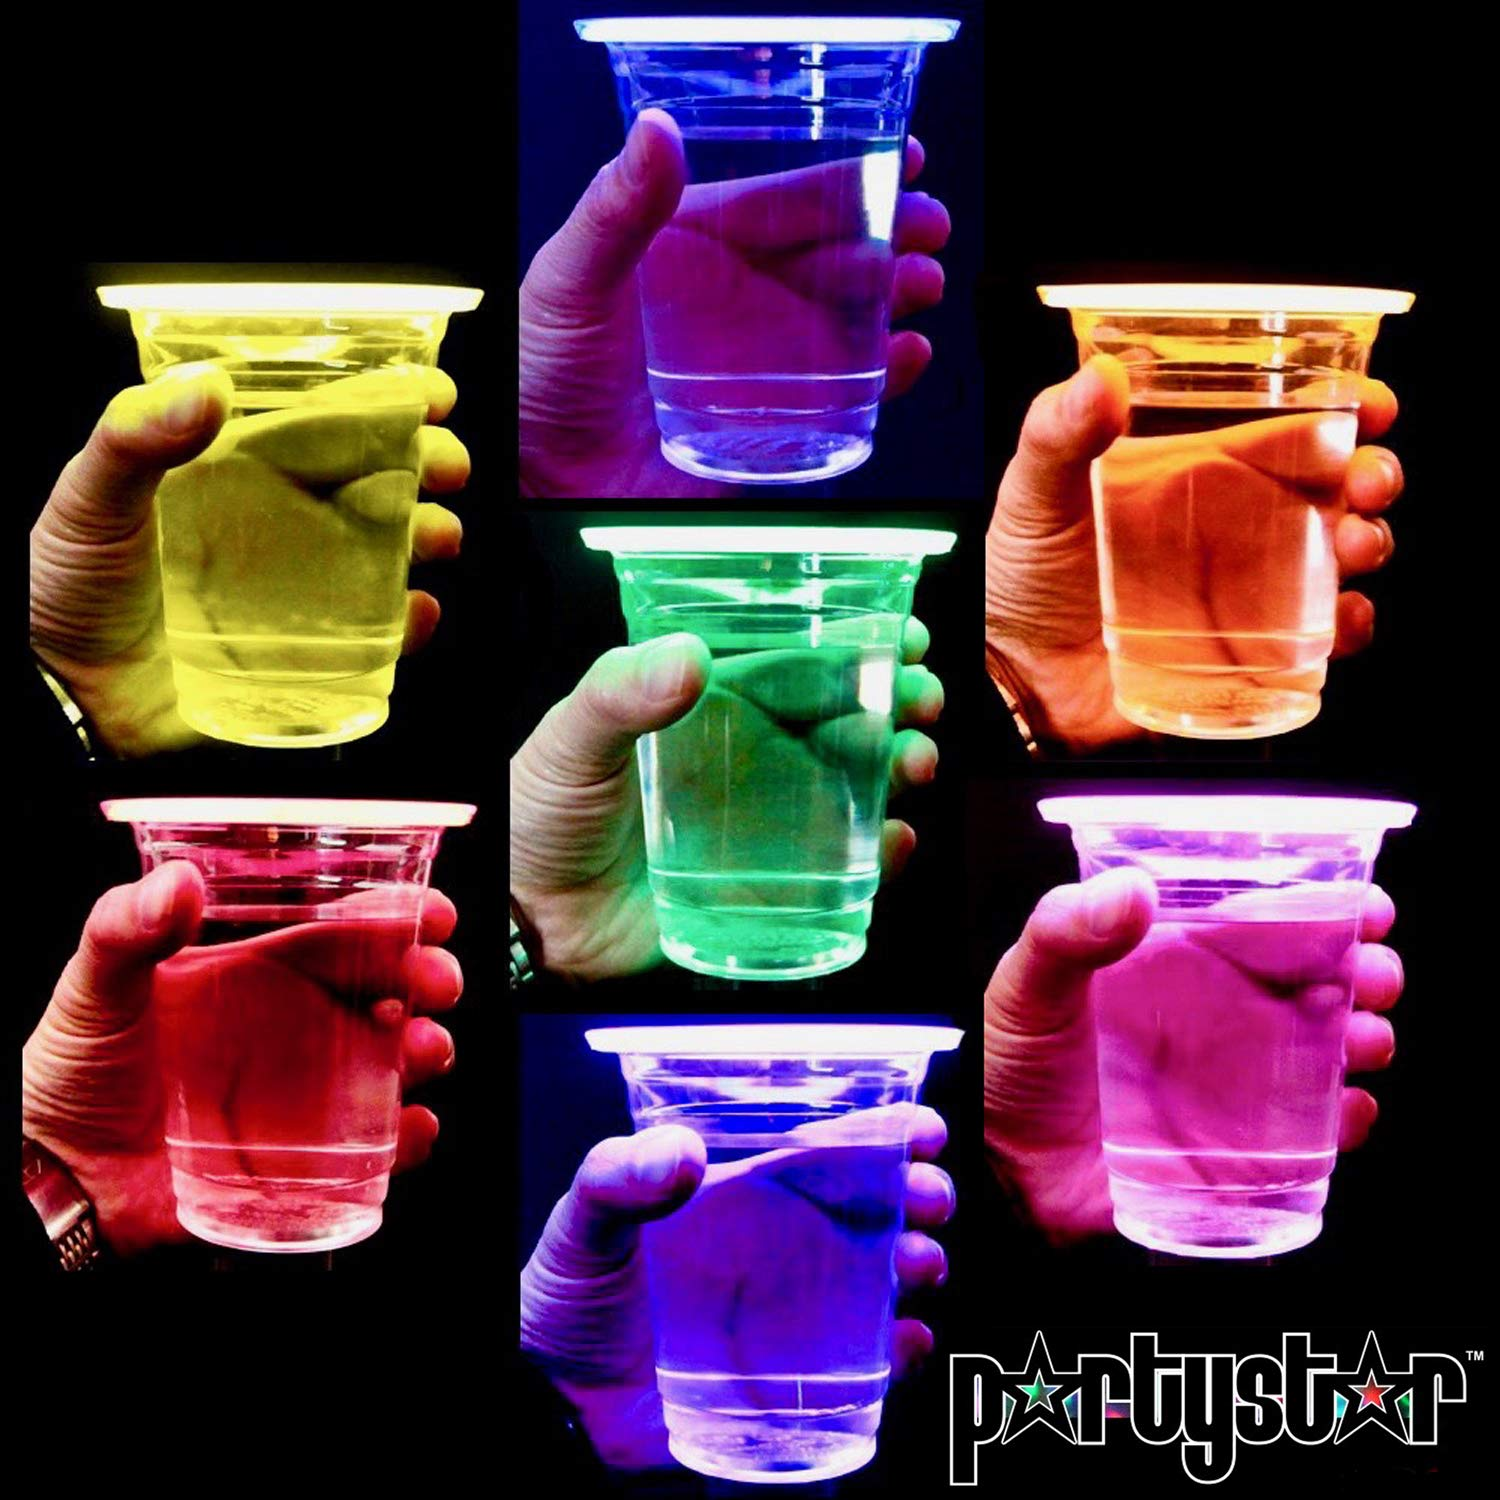 PartyStar 16oz Glowing Party Cups for Indoor Outdoor Party Event Fun, Multi-Color Variety Pack with 7 Bright Glow-In-The-Dark Colors for House Parties Birthdays Concerts Weddings BBQ Beach DJ Holidays